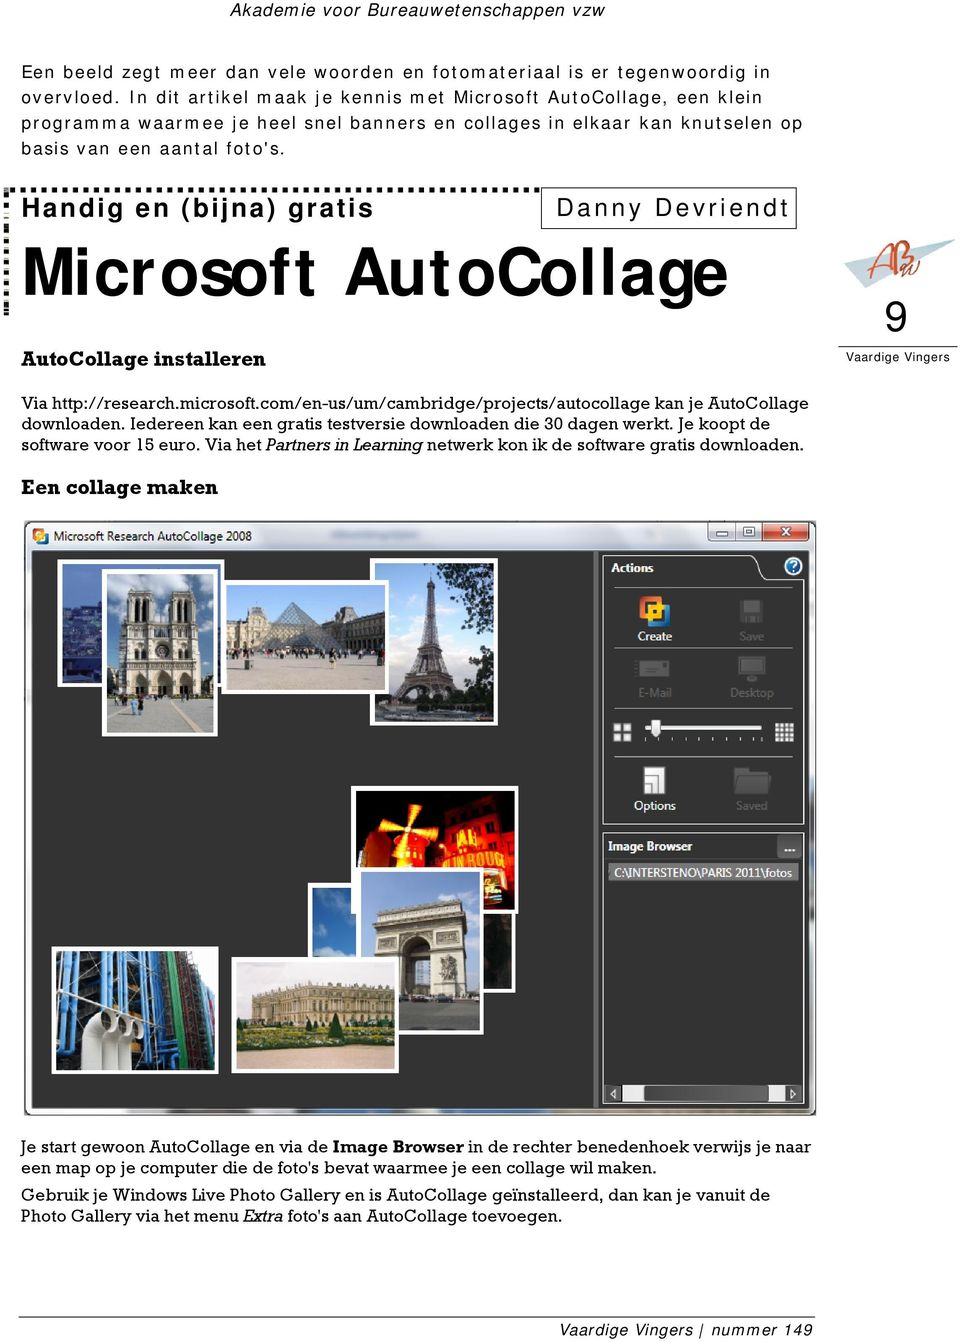 Handig en (bijna) gratis Danny Devriendt Microsoft AutoCollage AutoCollage installeren 9 Via http://research.microsoft.com/en-us/um/cambridge/projects/autocollage kan je AutoCollage downloaden.